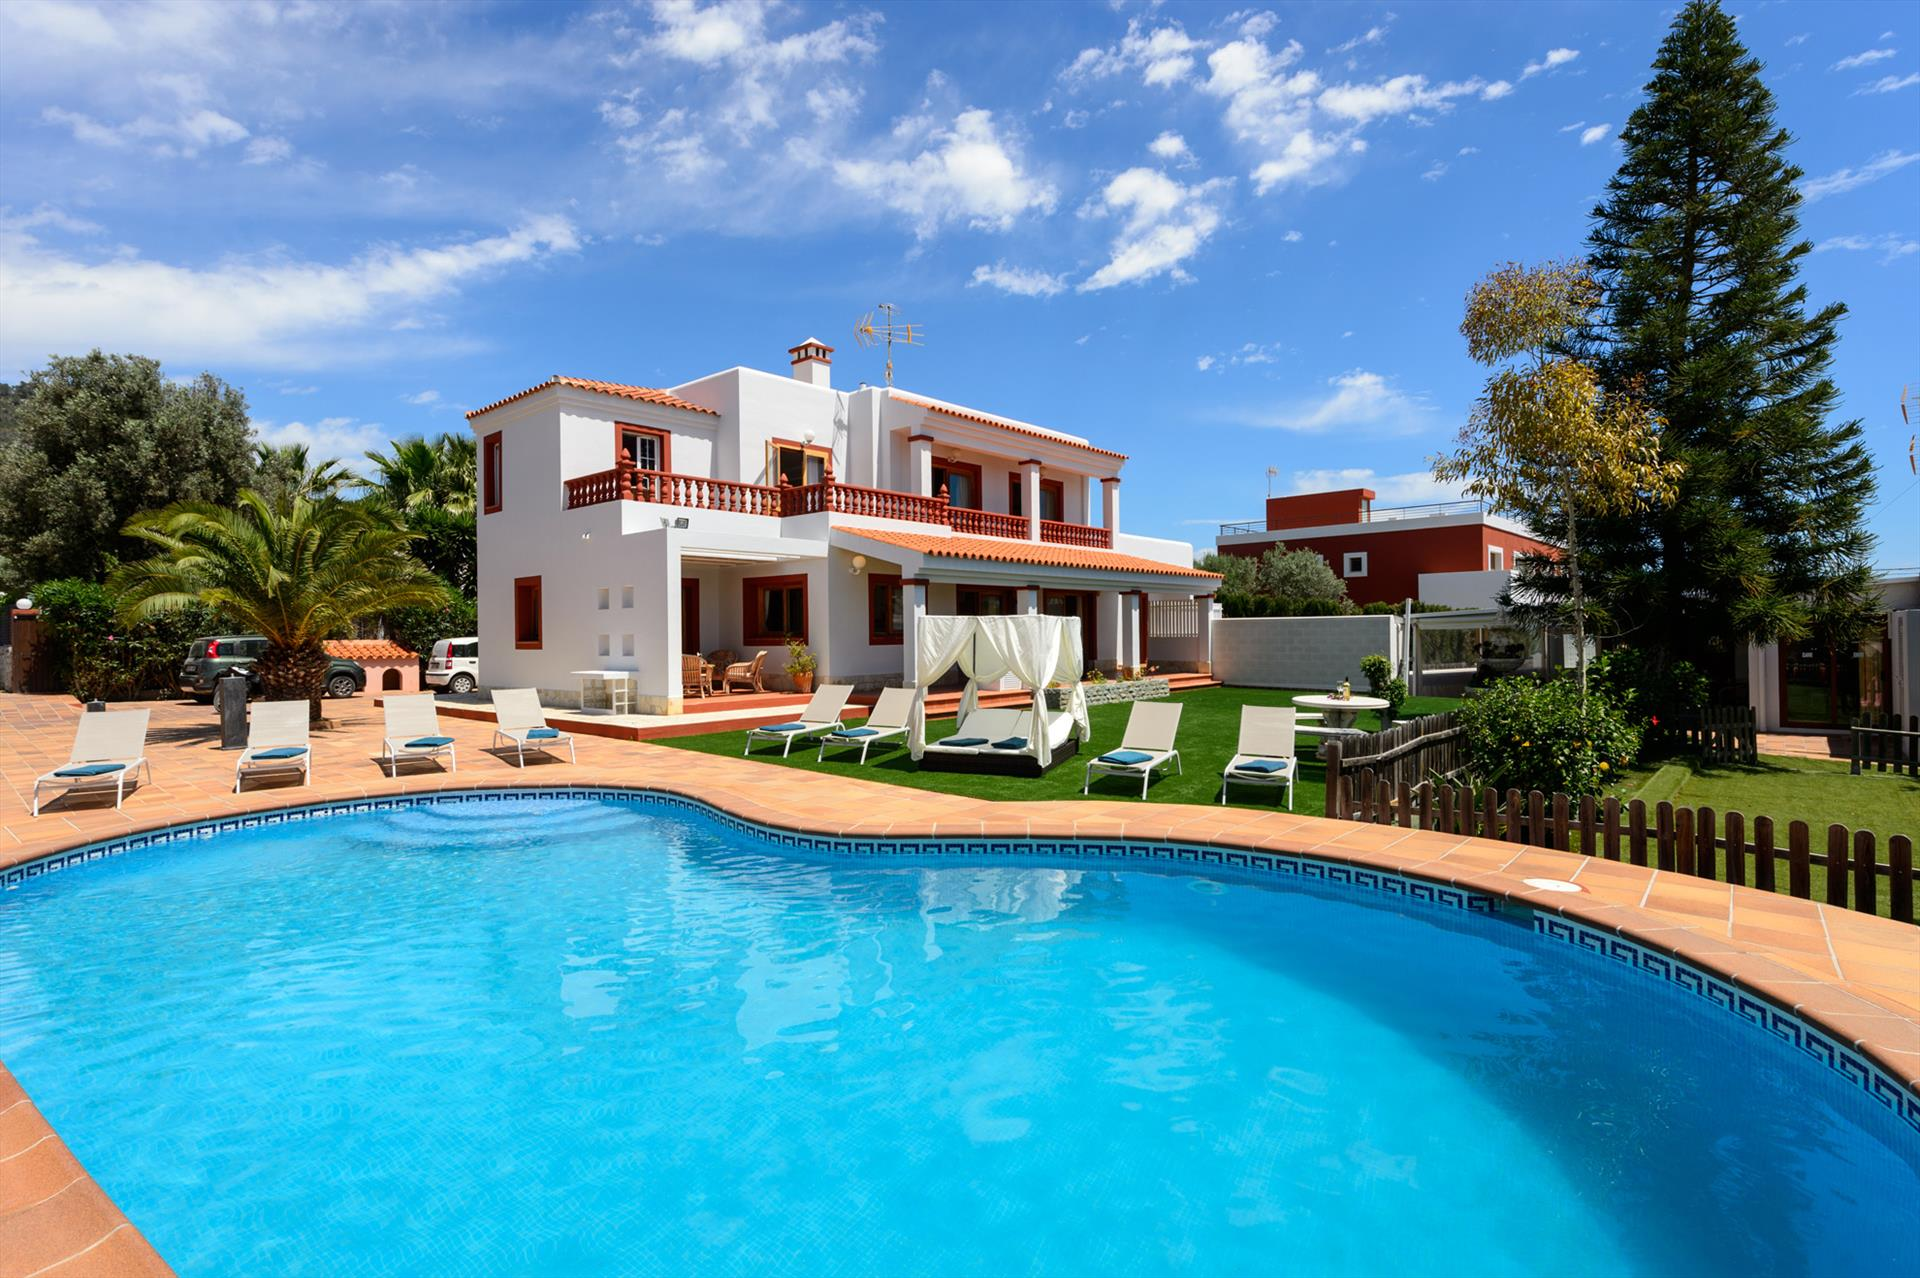 Carroca villa, Villa  with private pool in Ibiza, Ibiza, Spain for 10 persons...